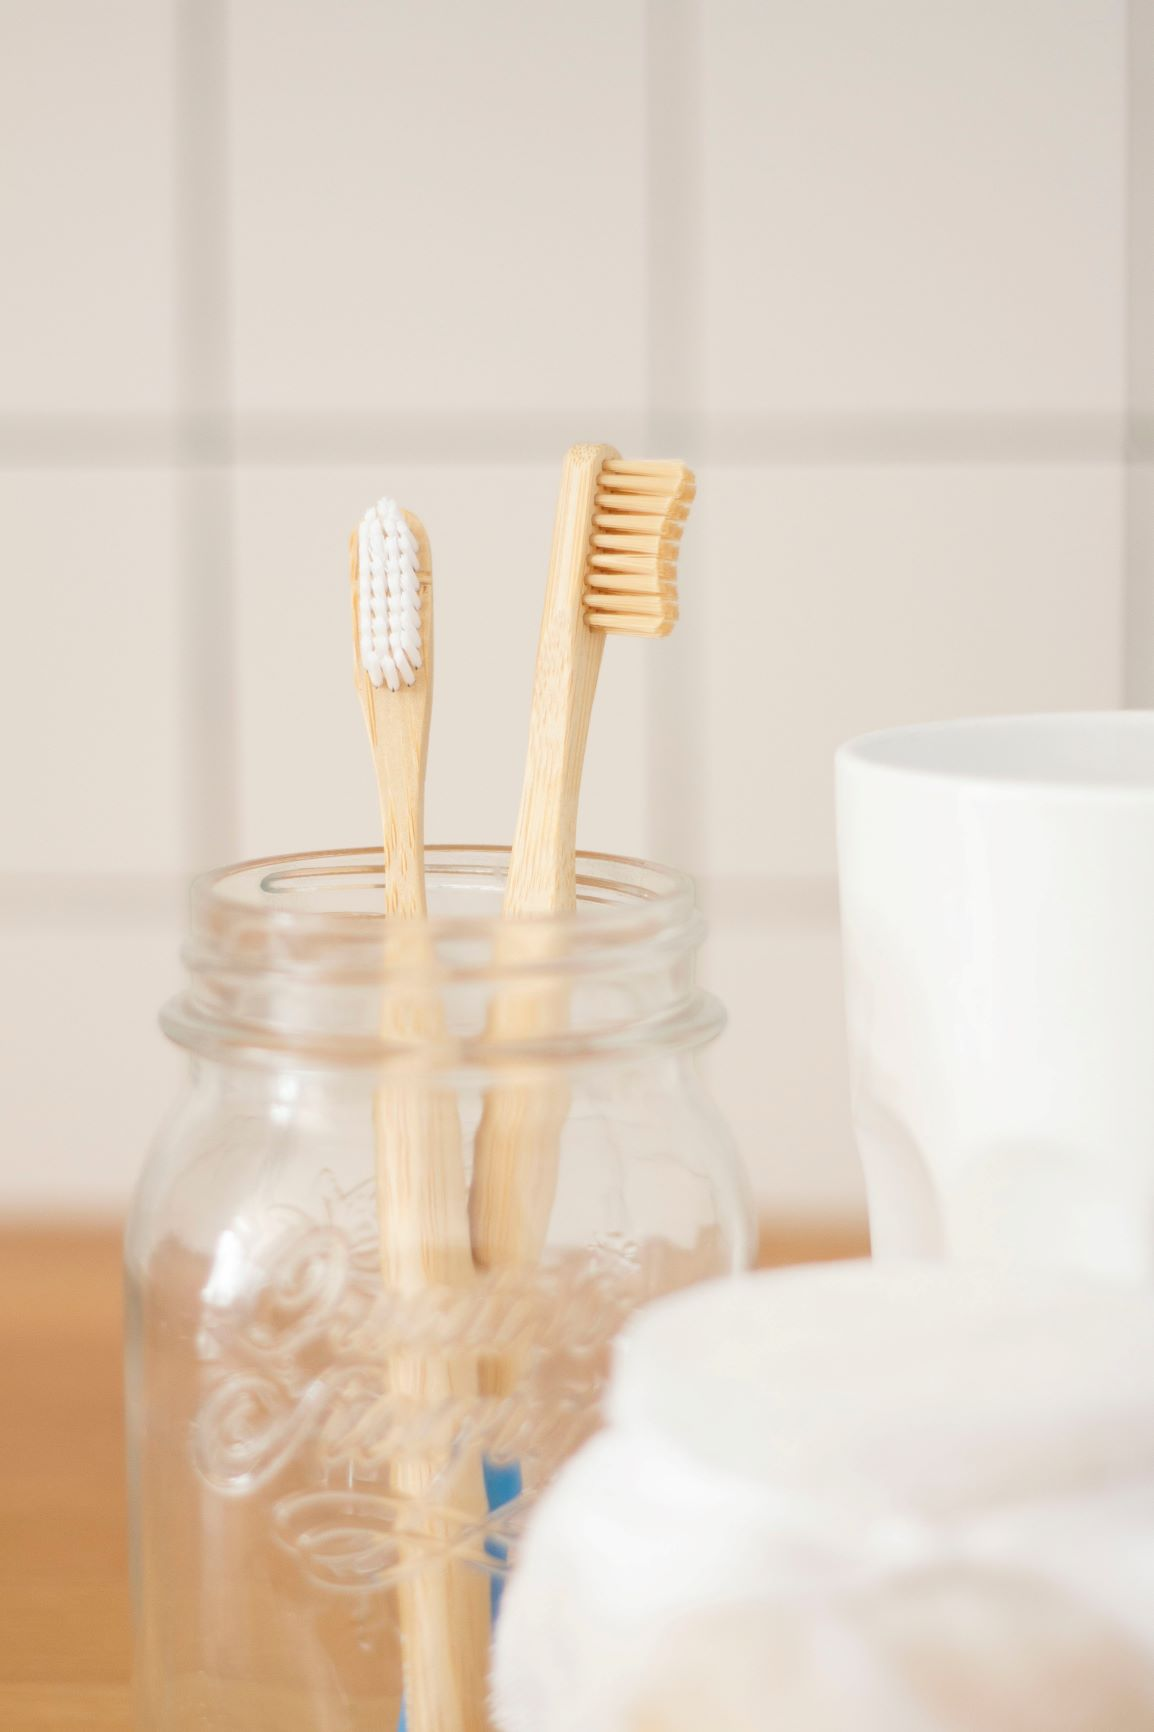 brush teeth to avoid gum disease